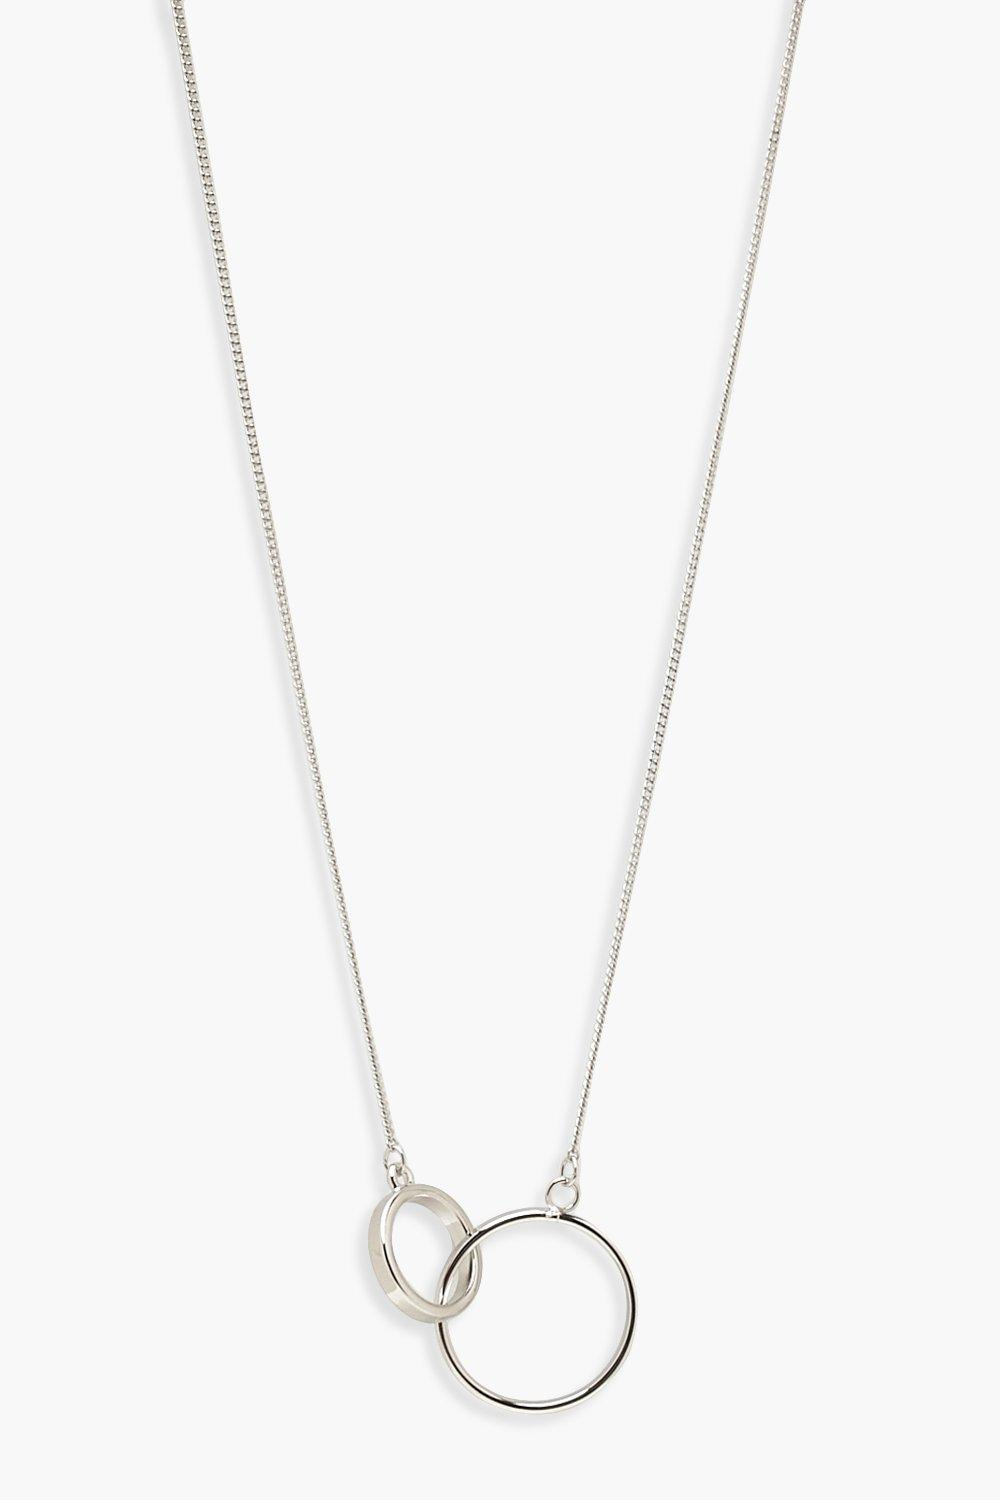 boohoo Womens Simple Circle Linked Necklace - Grey - One Size, Grey